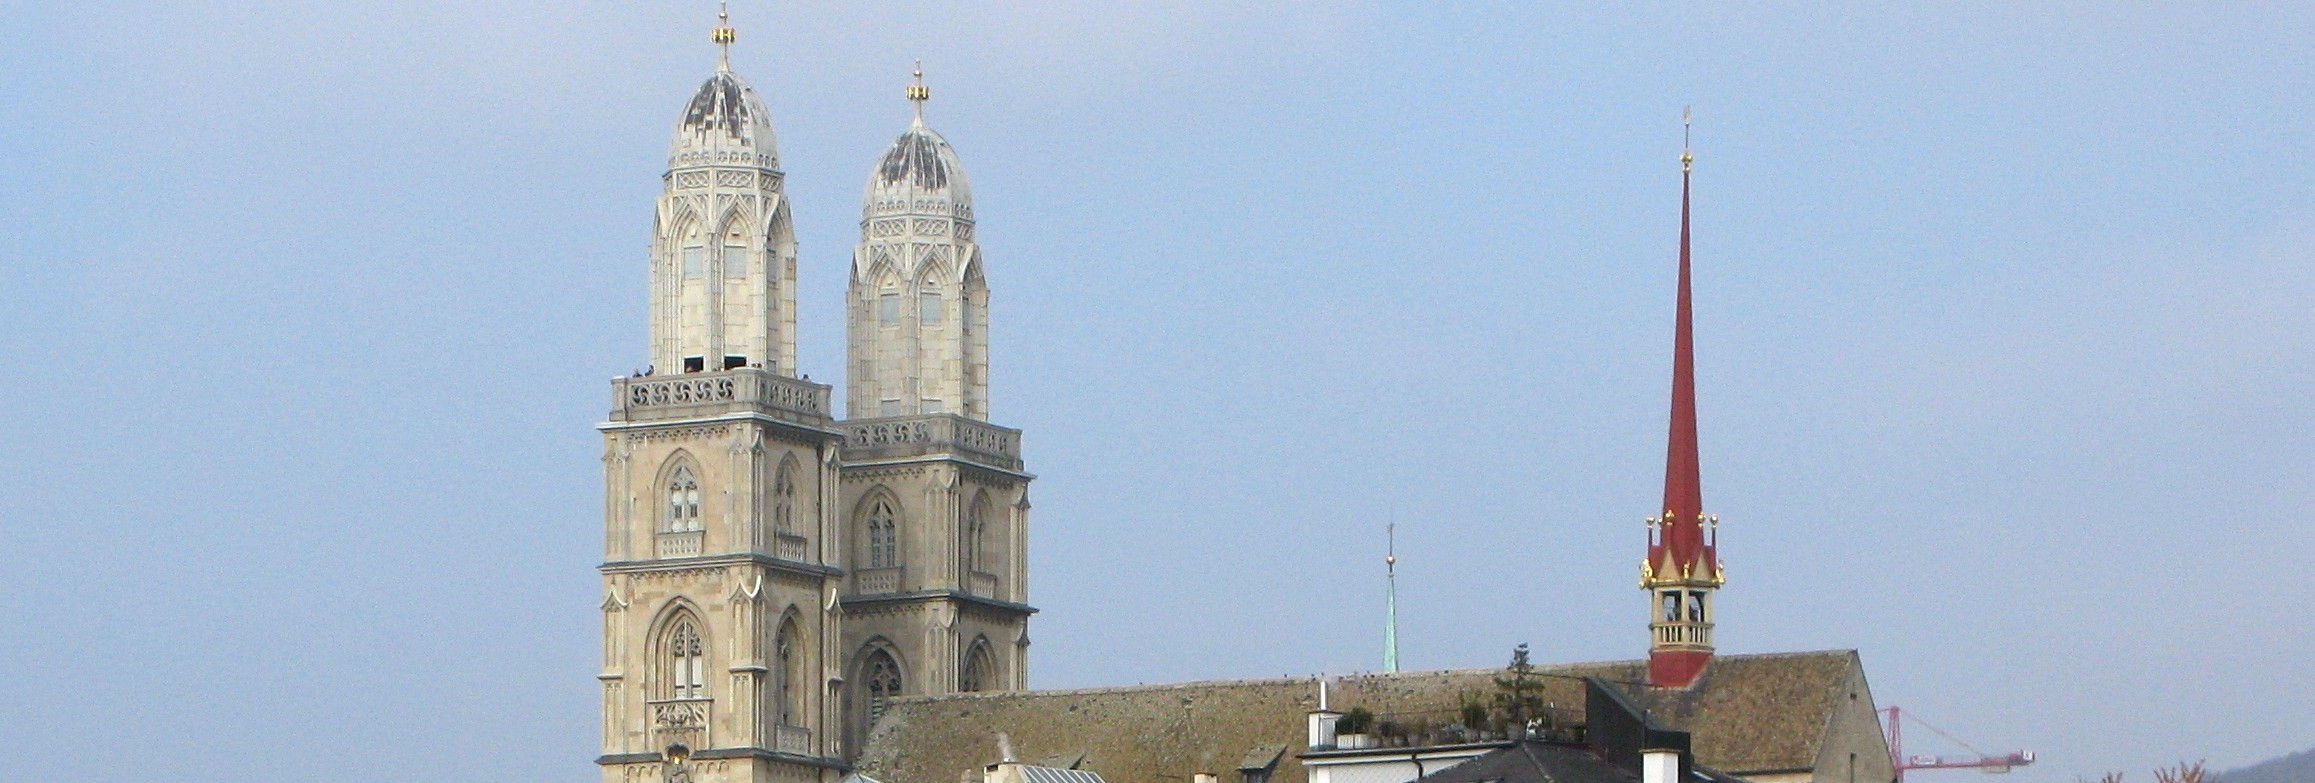 Grossmünster in Zürich